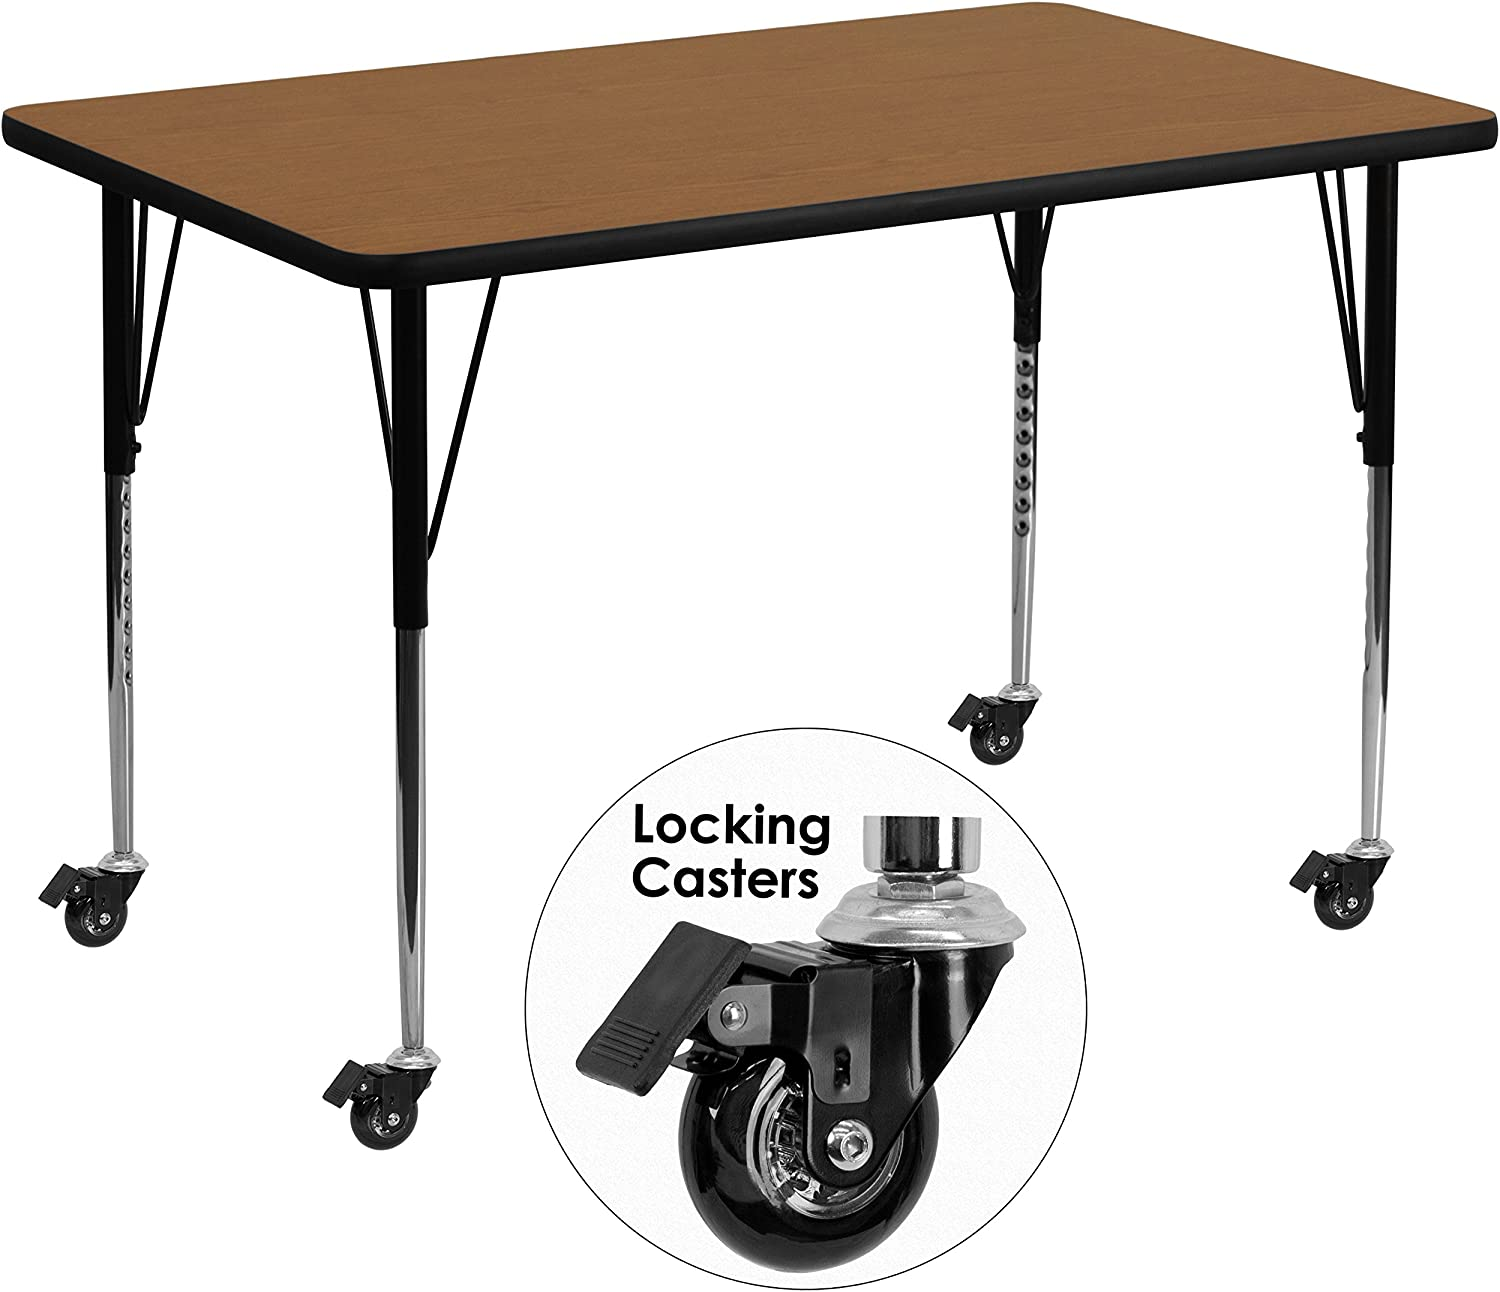 MFO Mobile 36W x 72L Rectangular Activity Table with Oak Thermal Fused Laminate Top and Standard Height Adjustable Legs